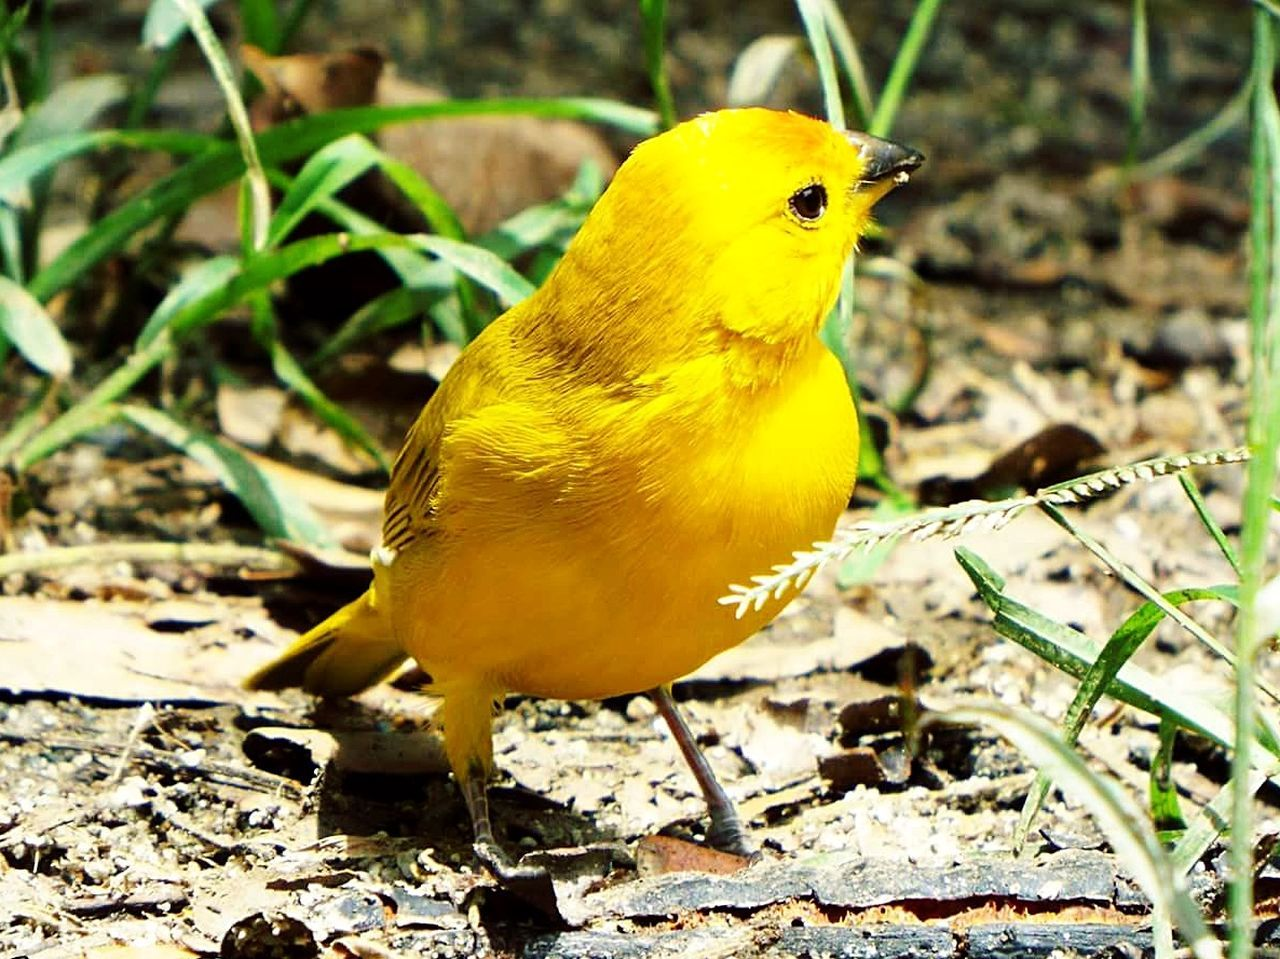 Bird One Animal Animal Wildlife Yellow Animal Themes Animals In The Wild Outdoors No People Full Length Nature Close-up Day Beauty In Nature Animals In The Wild Rural Scene Scenics Nature Beauty In Nature Landscape Arts Culture And Entertainment